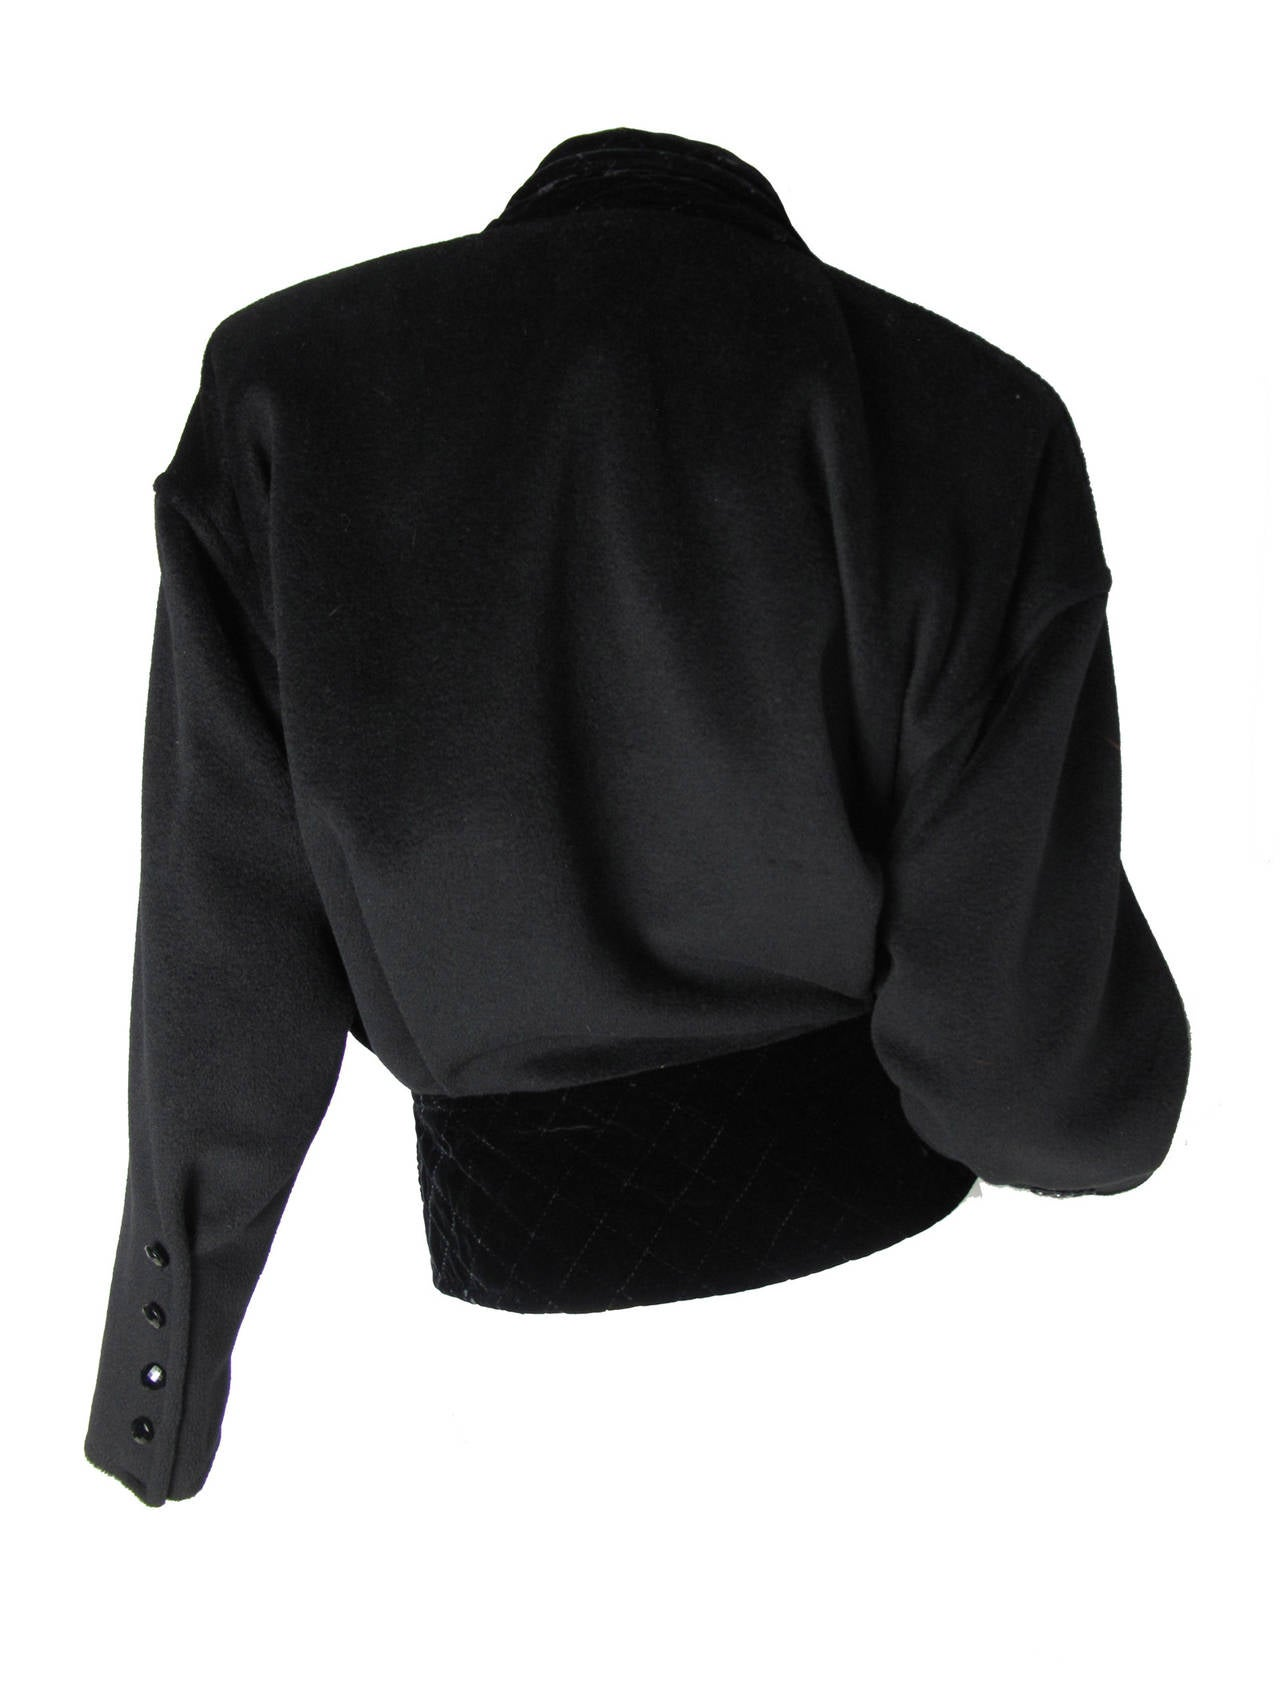 Women's Ungaro Wool and Velvet Jacket For Sale